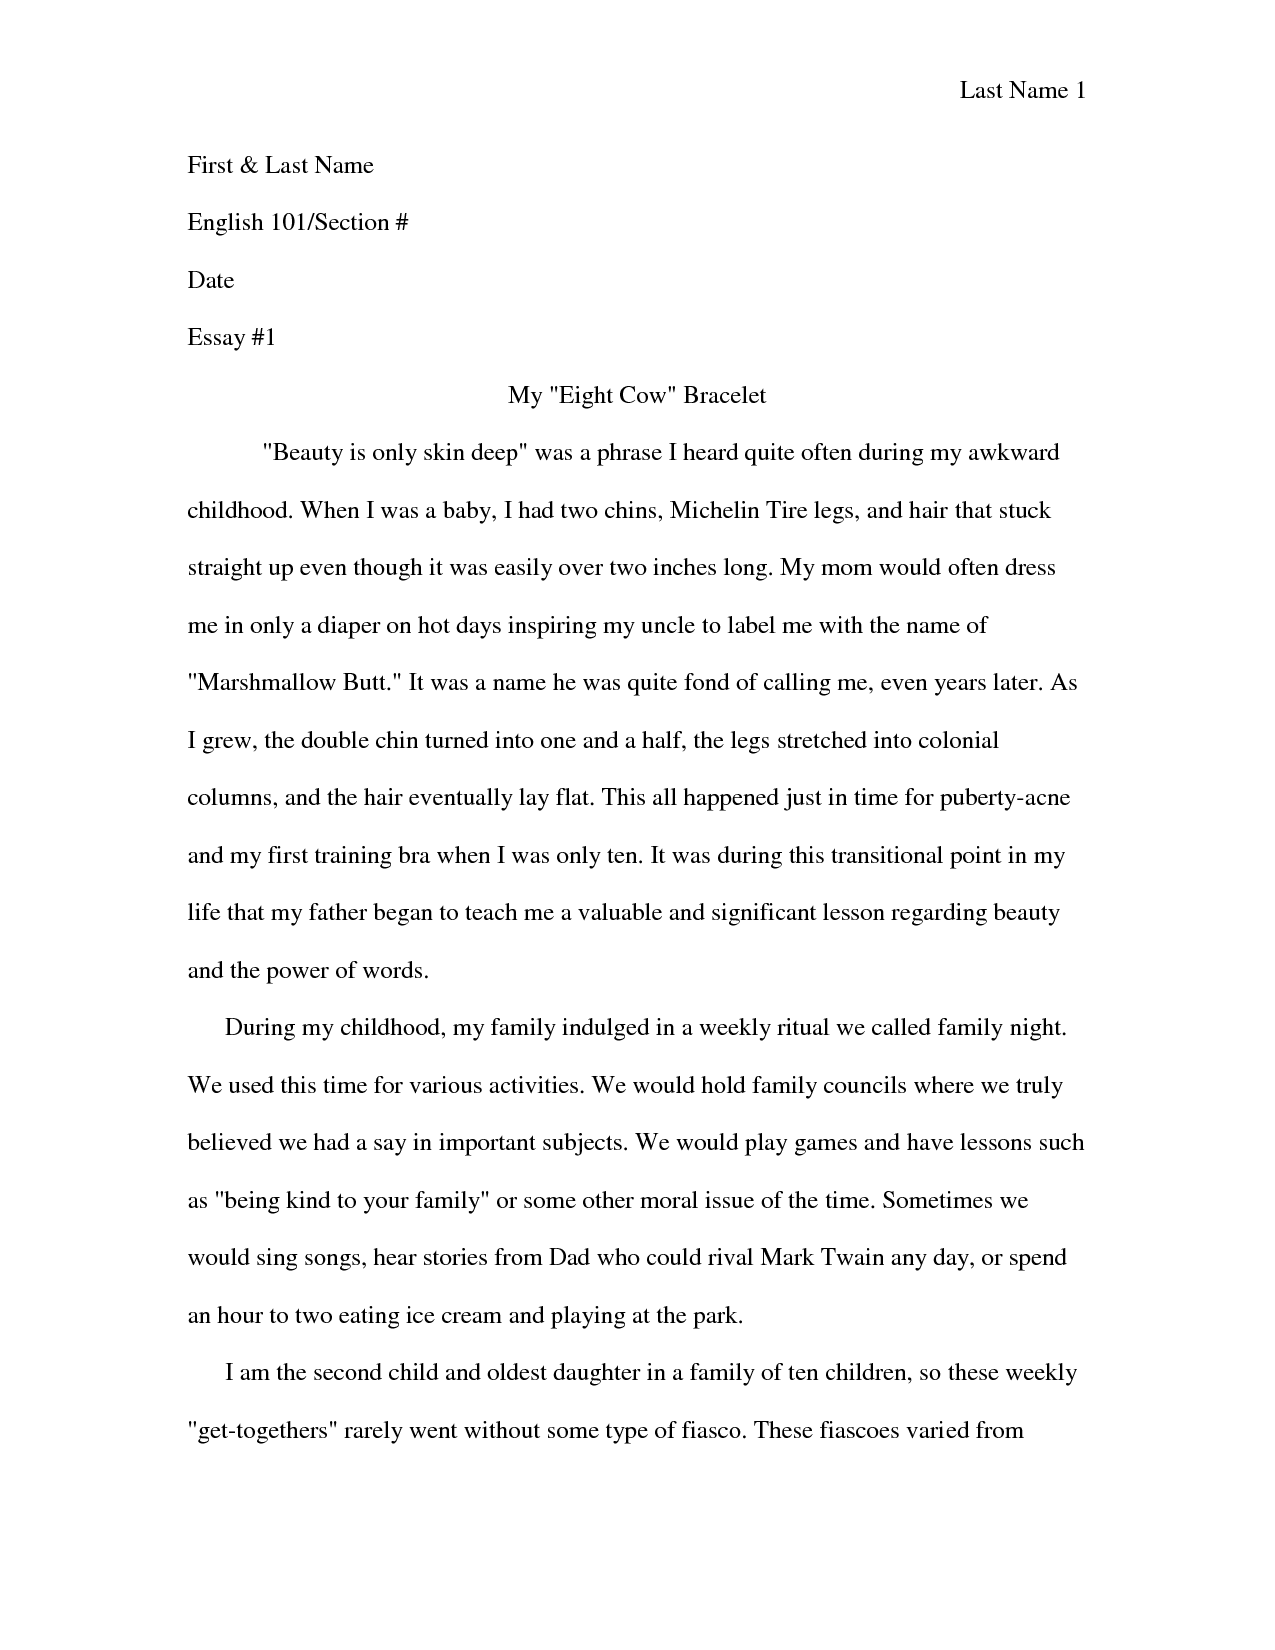 narrative essay the worst experience of my life